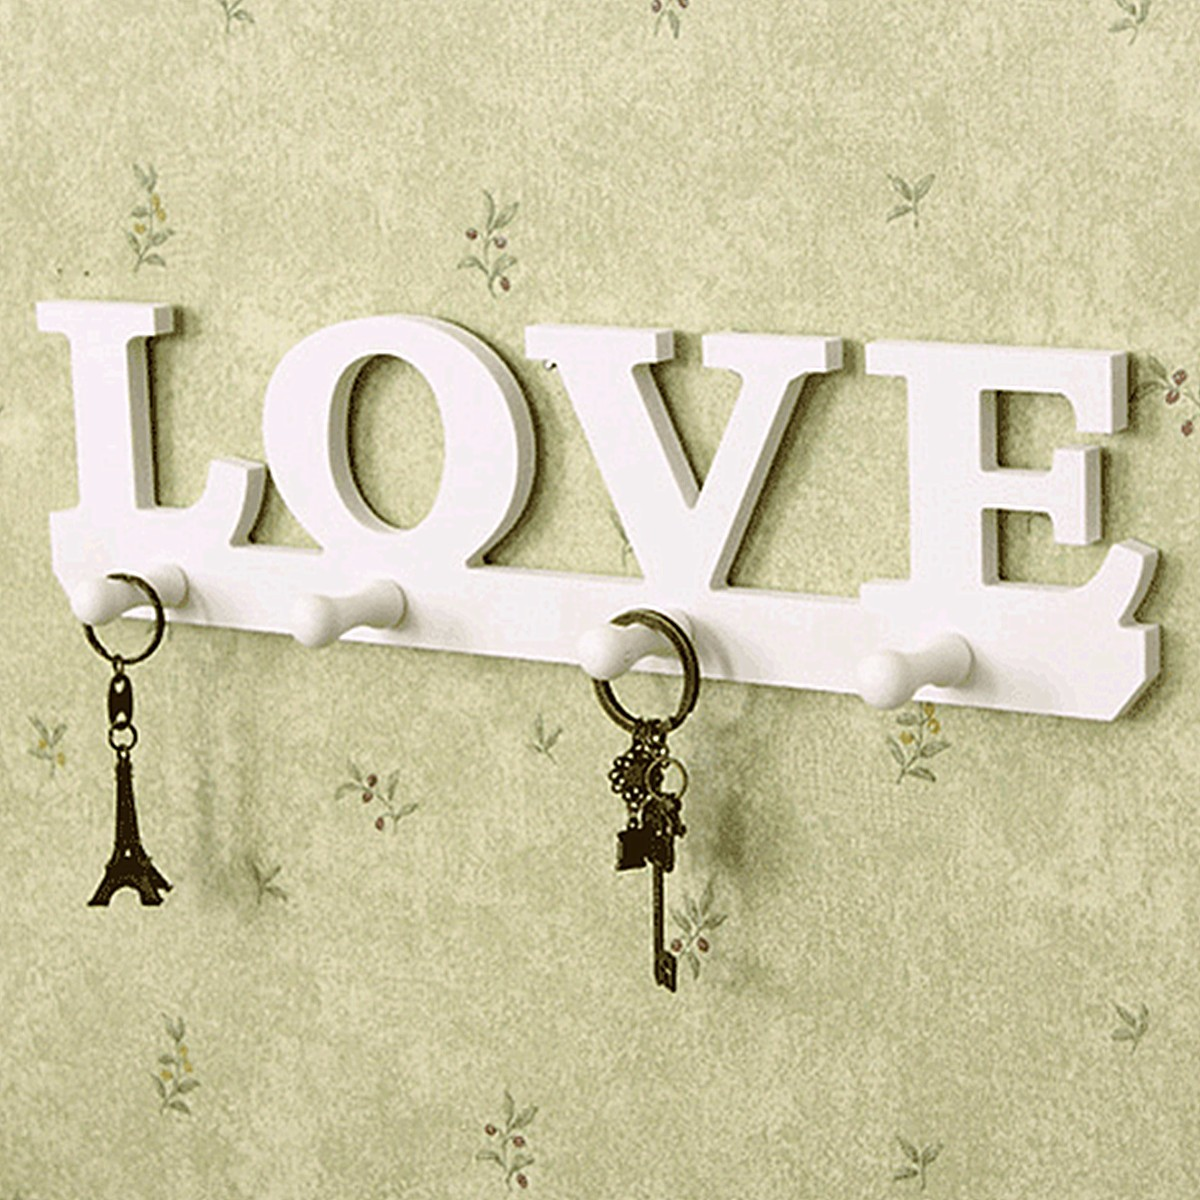 Creative Vintage White LOVE Robe Hook Clothes Holder Sundries Hanger Wall Decor